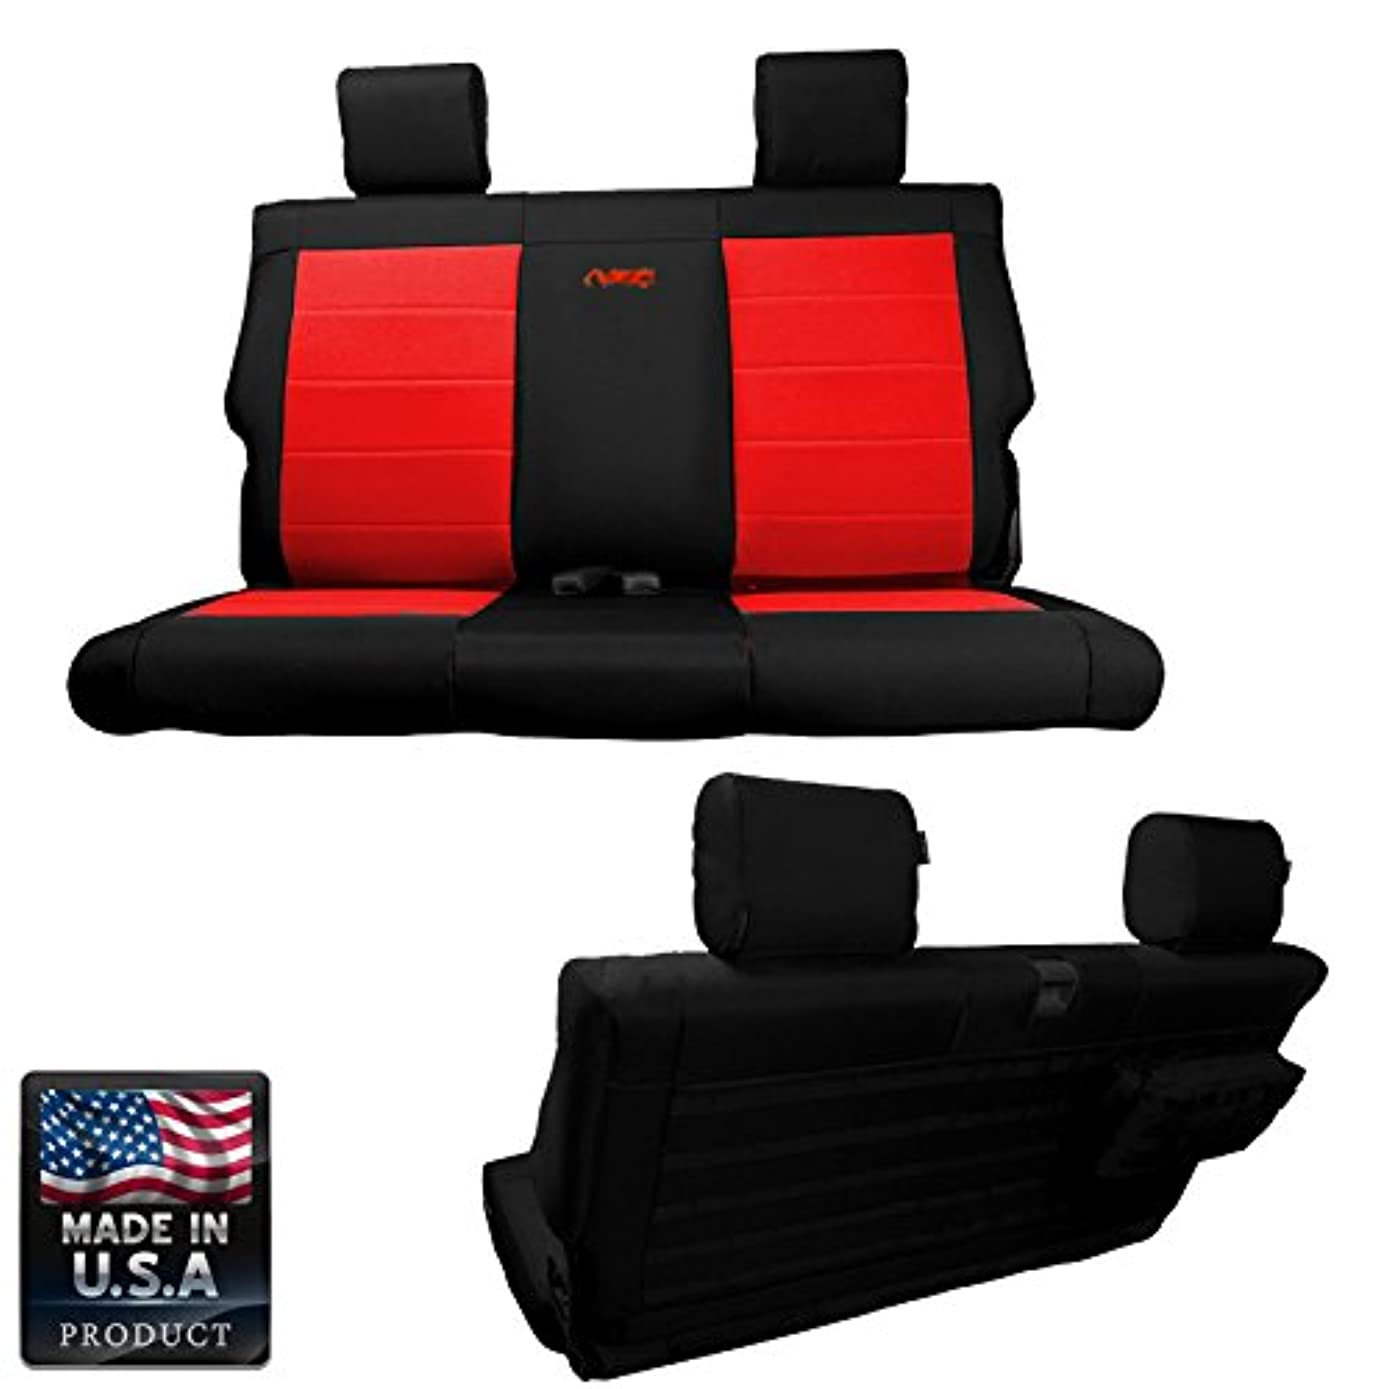 Bartact BTJKSC2013R2BR - 2013-2017 Jeep Wrangler JK 2-Door - Black/Red Mil-Spec with MOLLE System Rear Bench Seat Covers